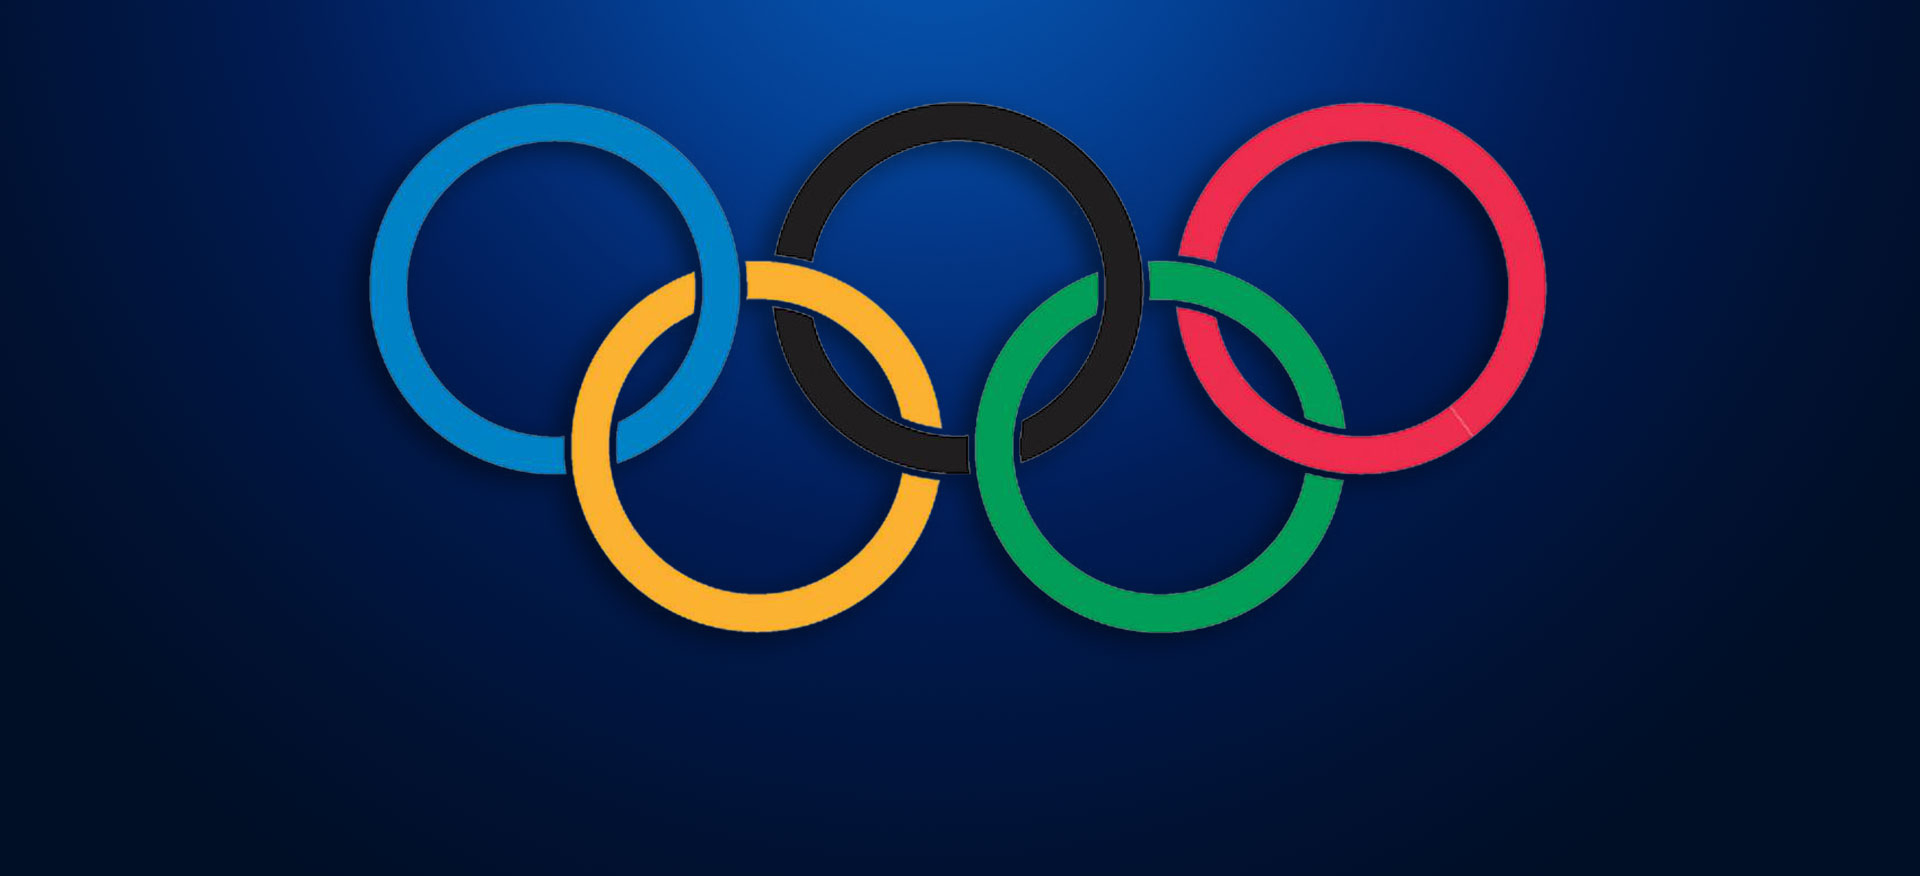 IOC To Pick Los Angeles Paris For  Or  Olympics - Los angeles doppler map